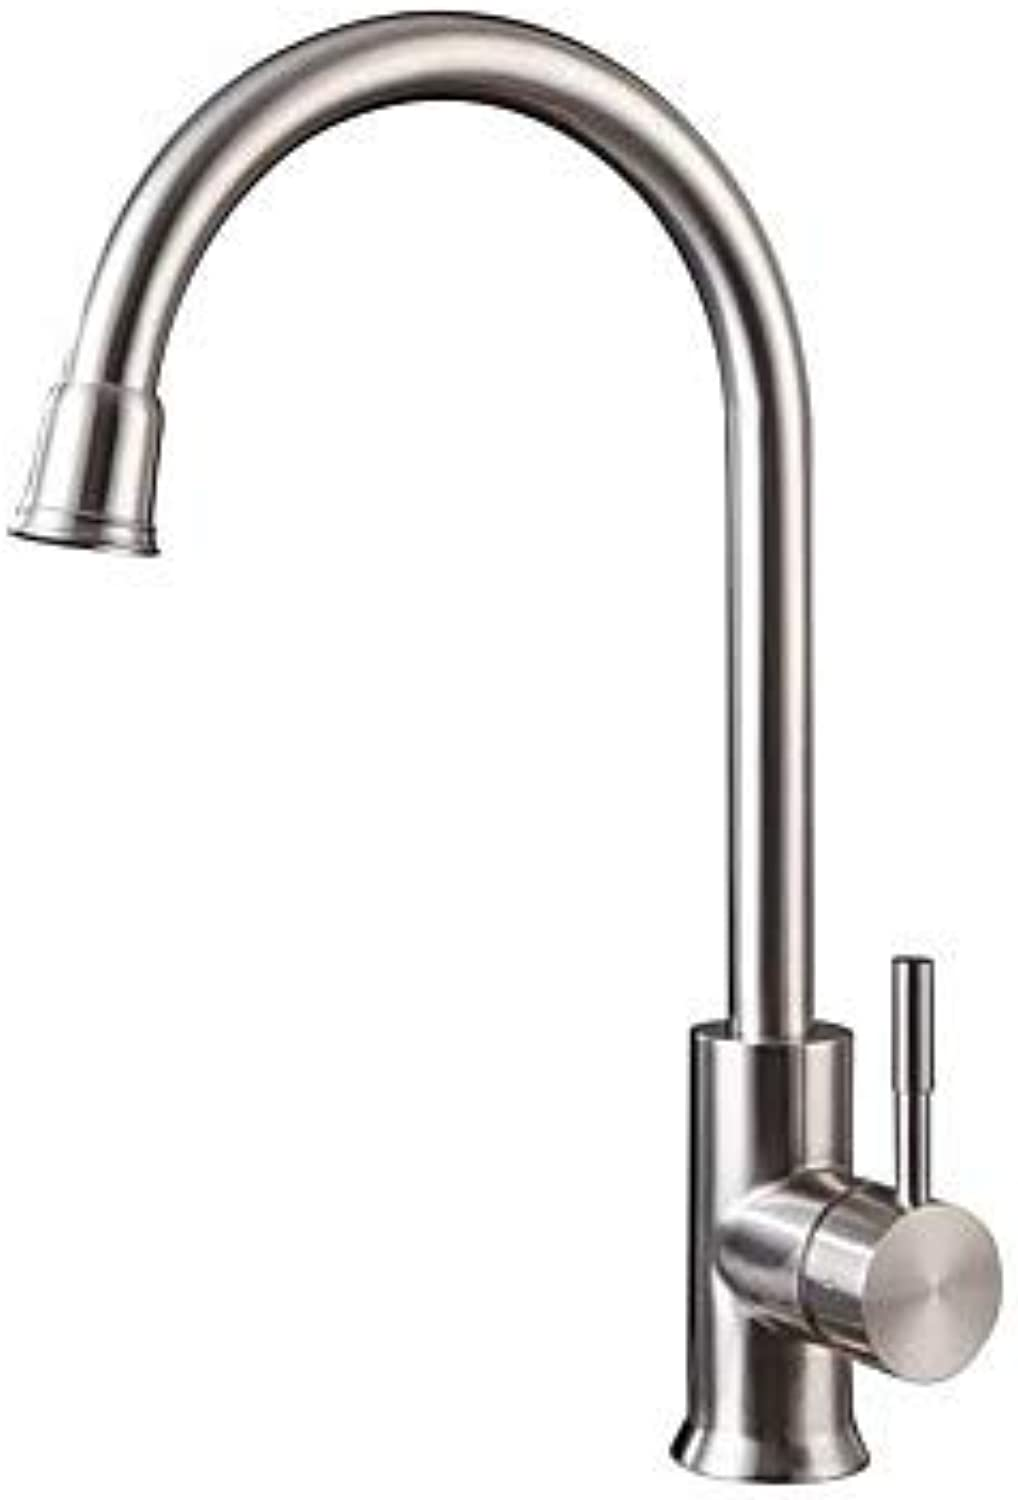 FUSHENG Kitchen Faucet - Fixed Stainless Steel Standard Spout Free Standing